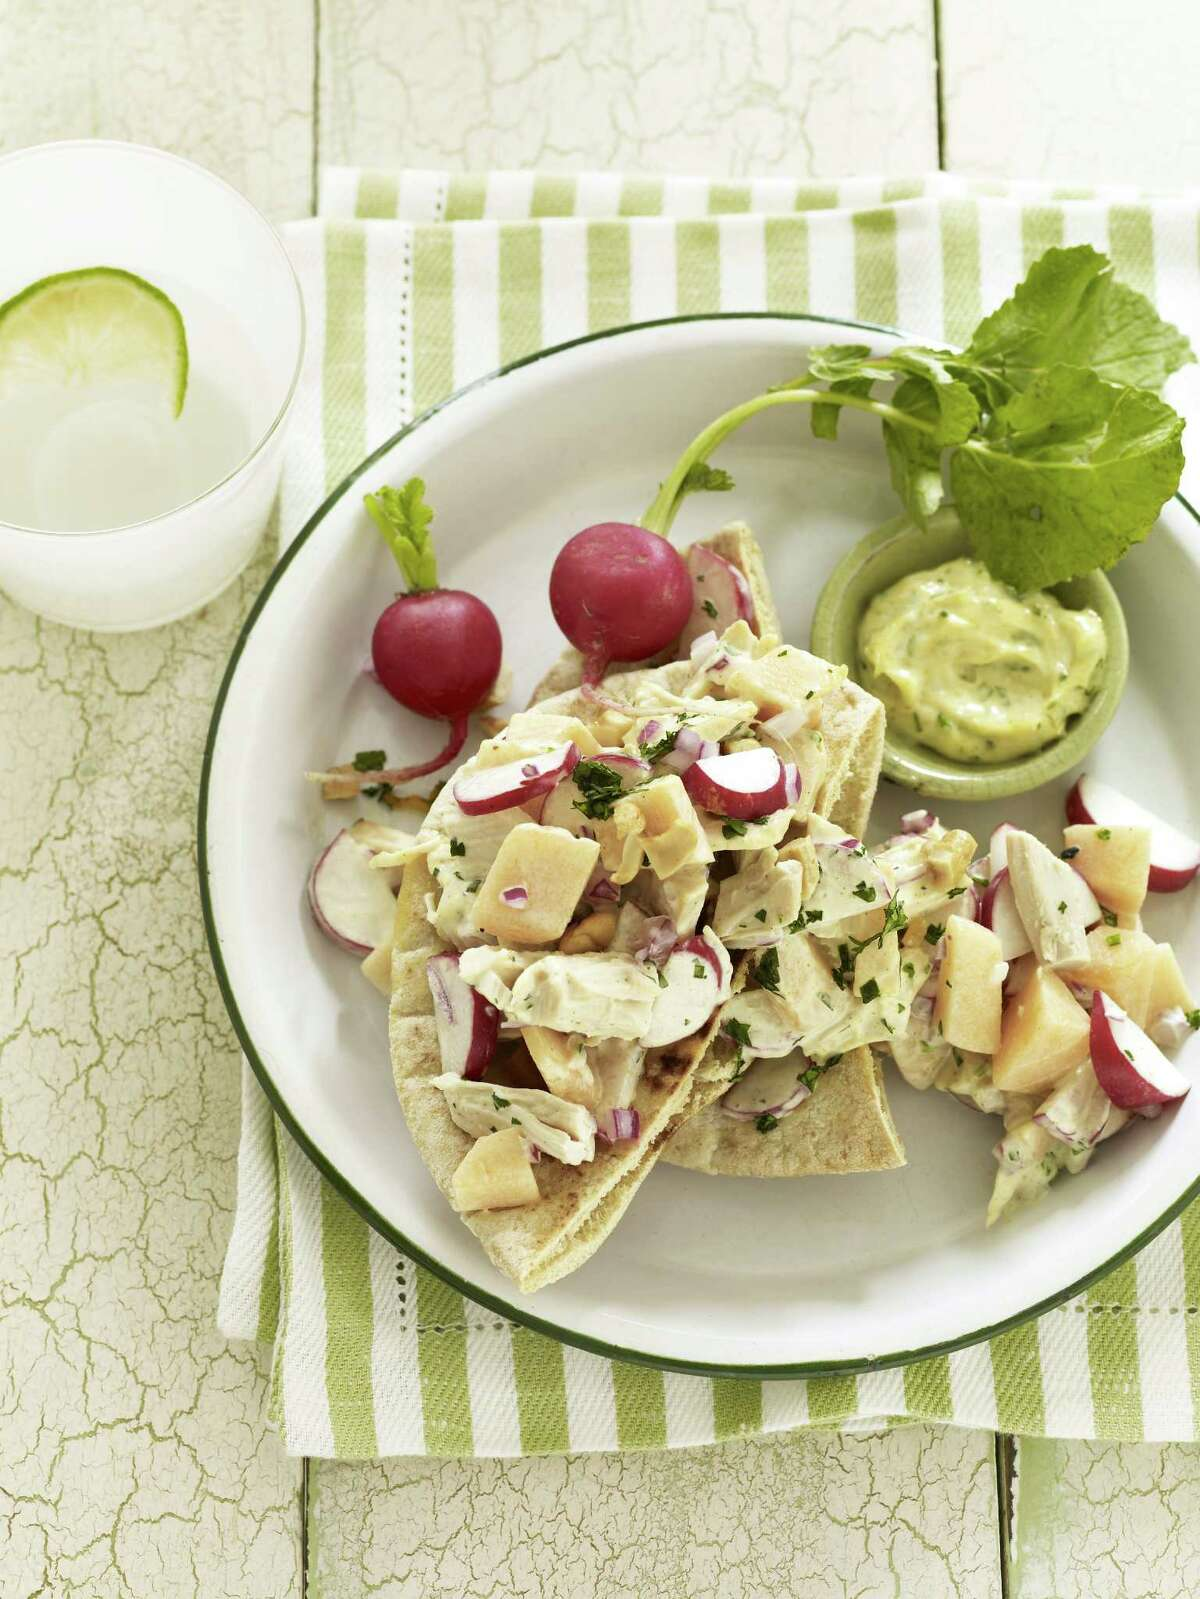 Good Housekeeping recipe for Curried Chicken Pitas.